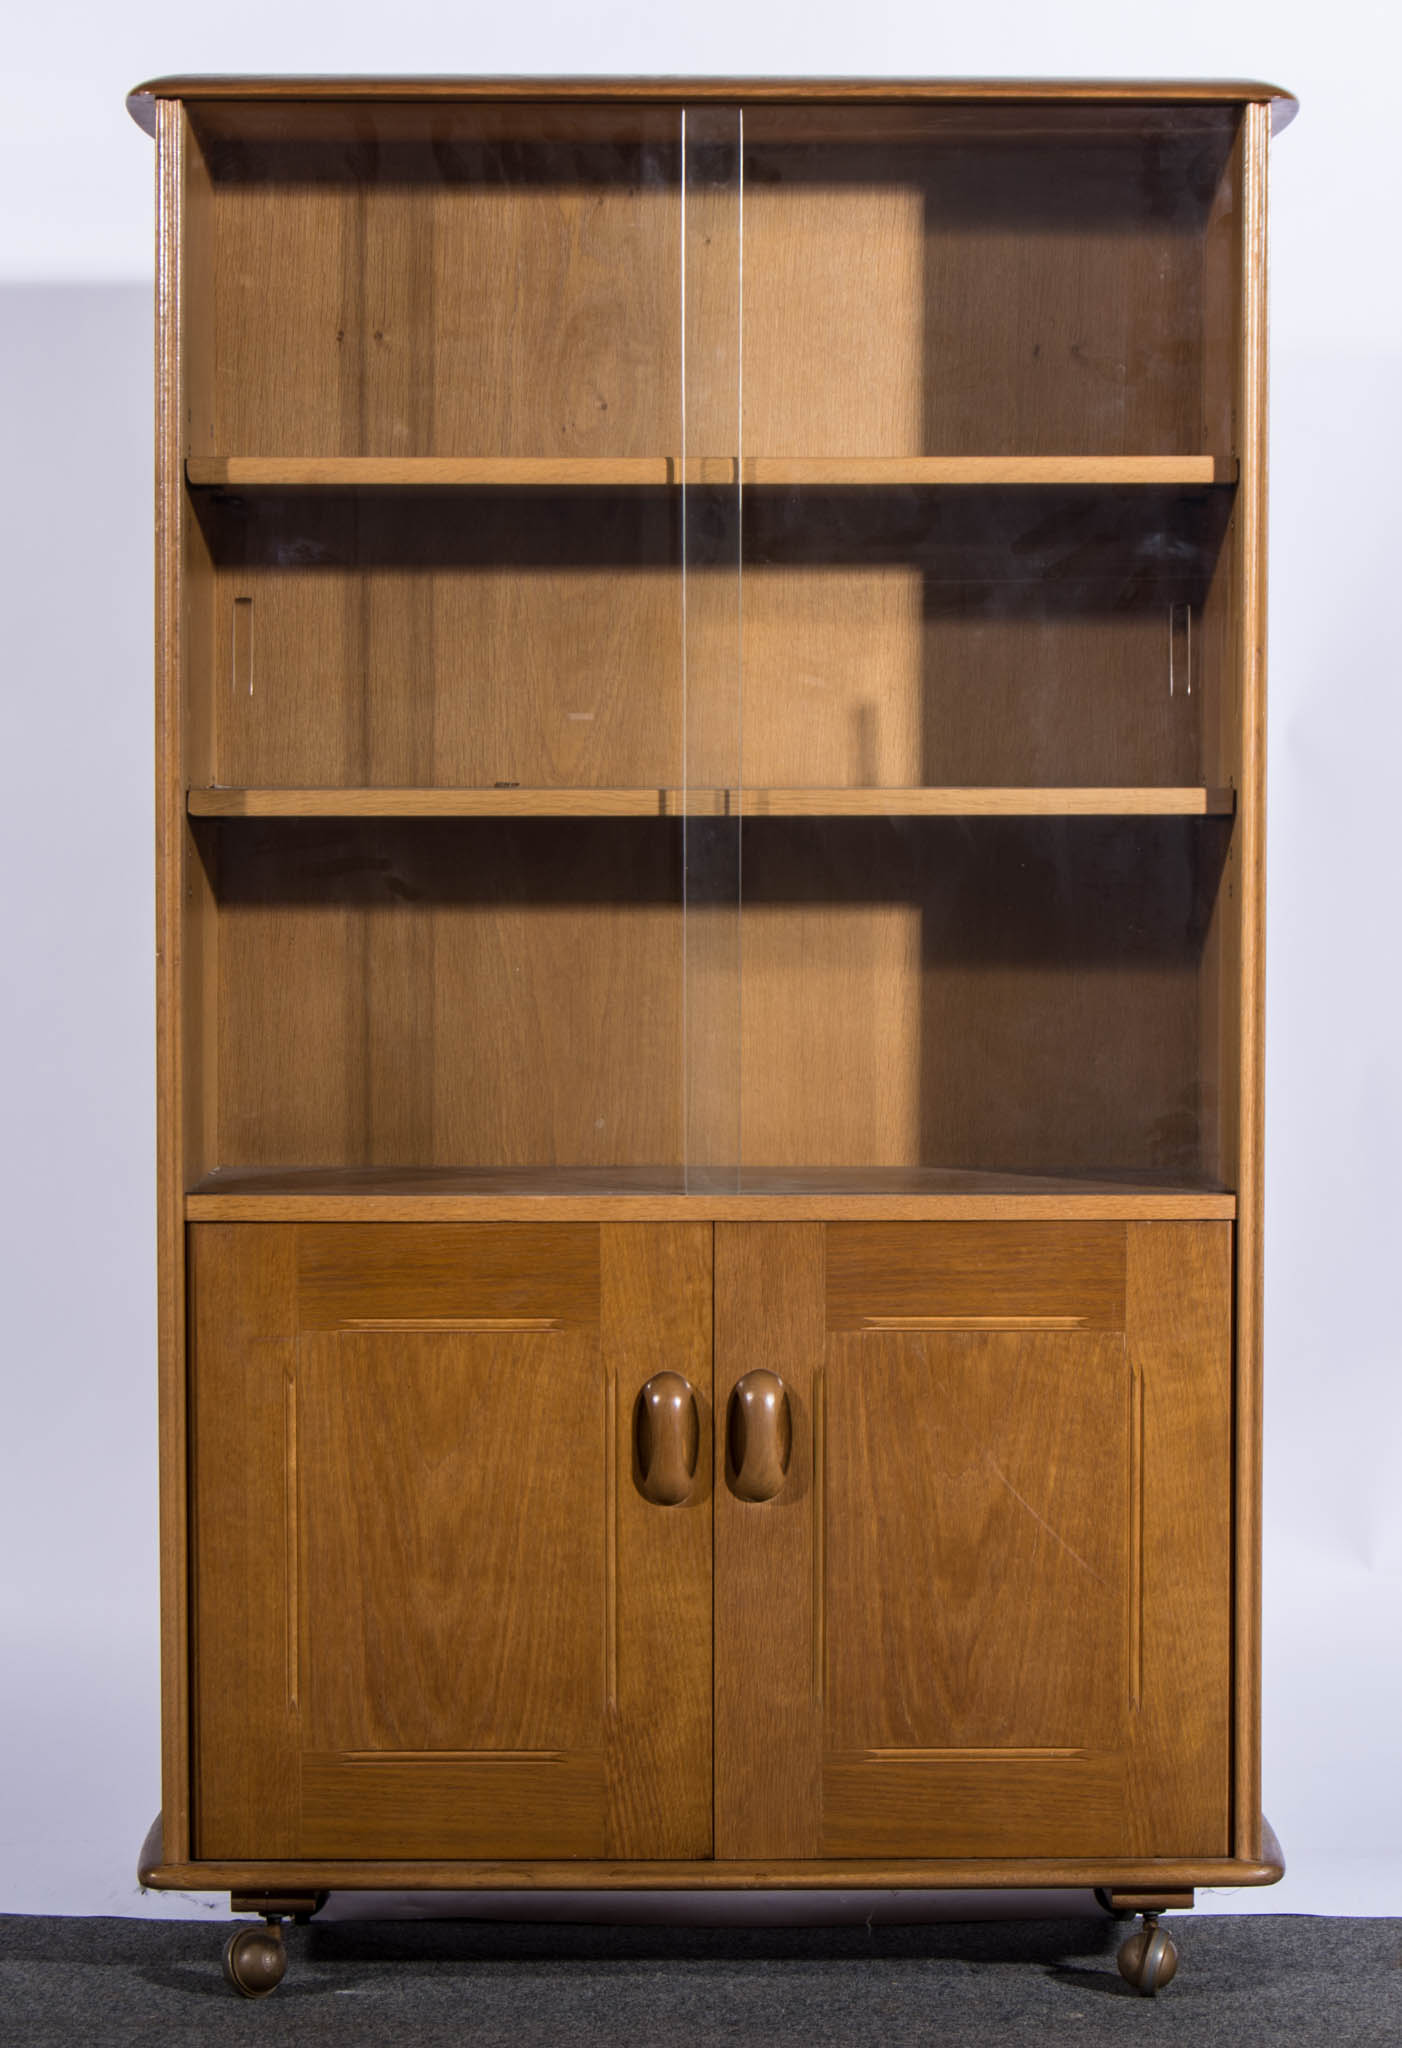 Lot 532  An Ercol Blonde Beech Bookcase Cabinet, Sliding Glass Doors  Enclosing Two Adjustable